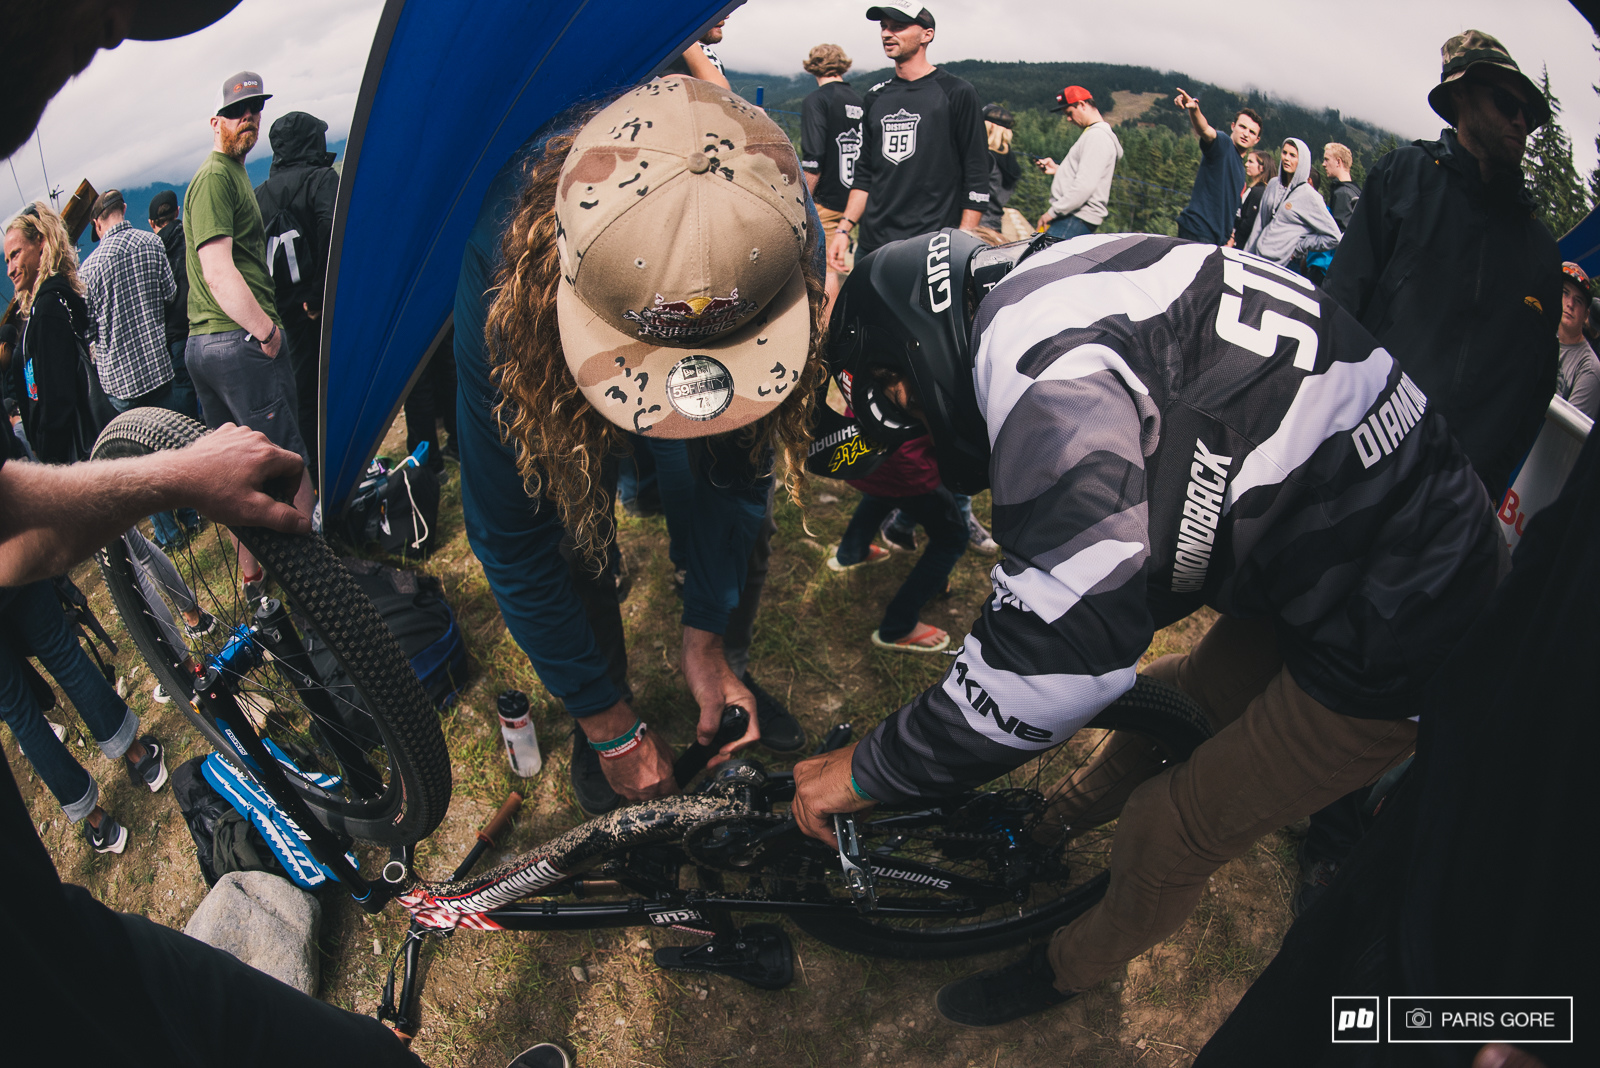 Kelly McGarry knows a thing or two about fixing cranks helping out his old teammate Carson Storch.